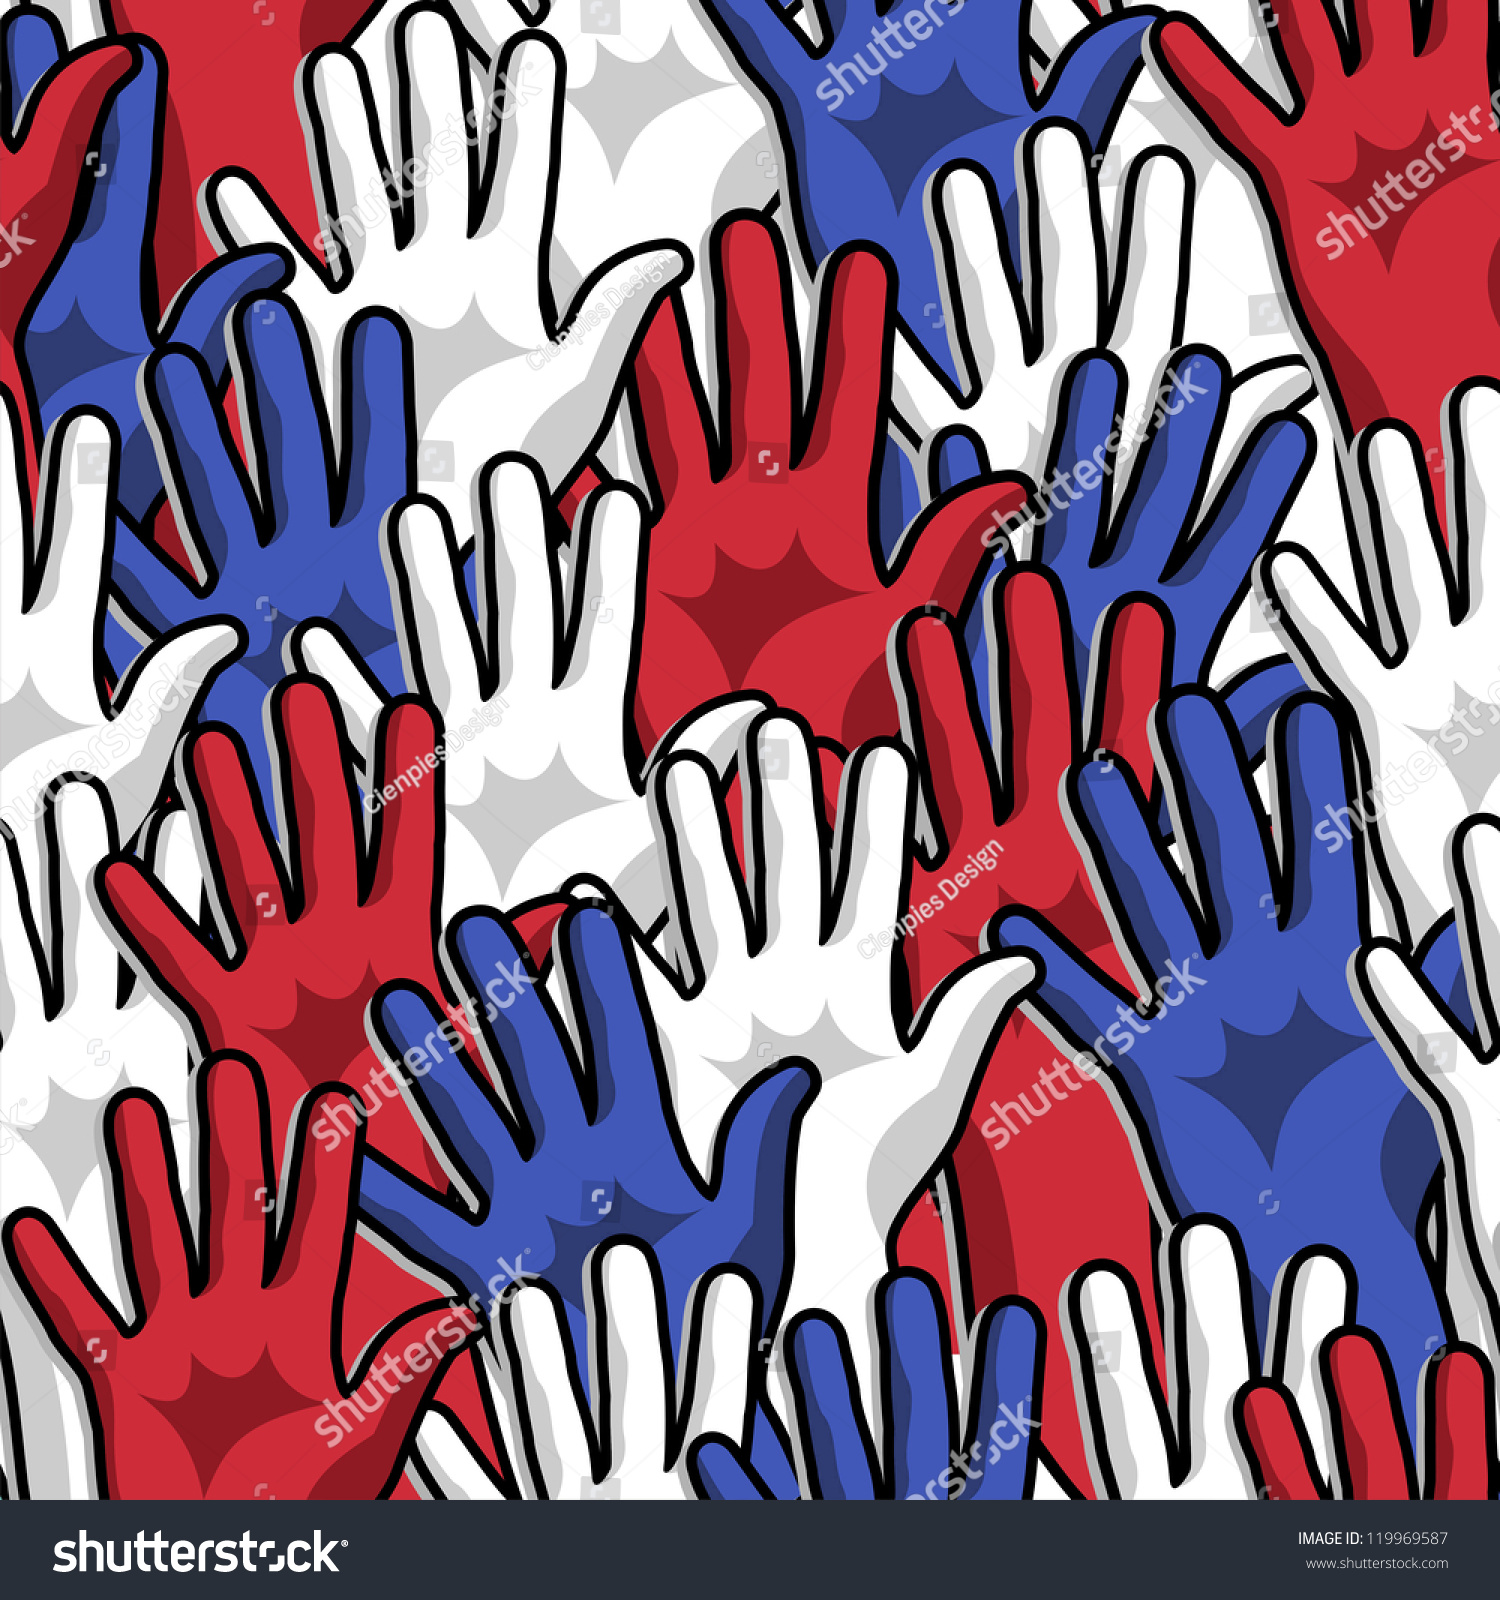 Democracy Voting Hands Up Seamless Pattern Background